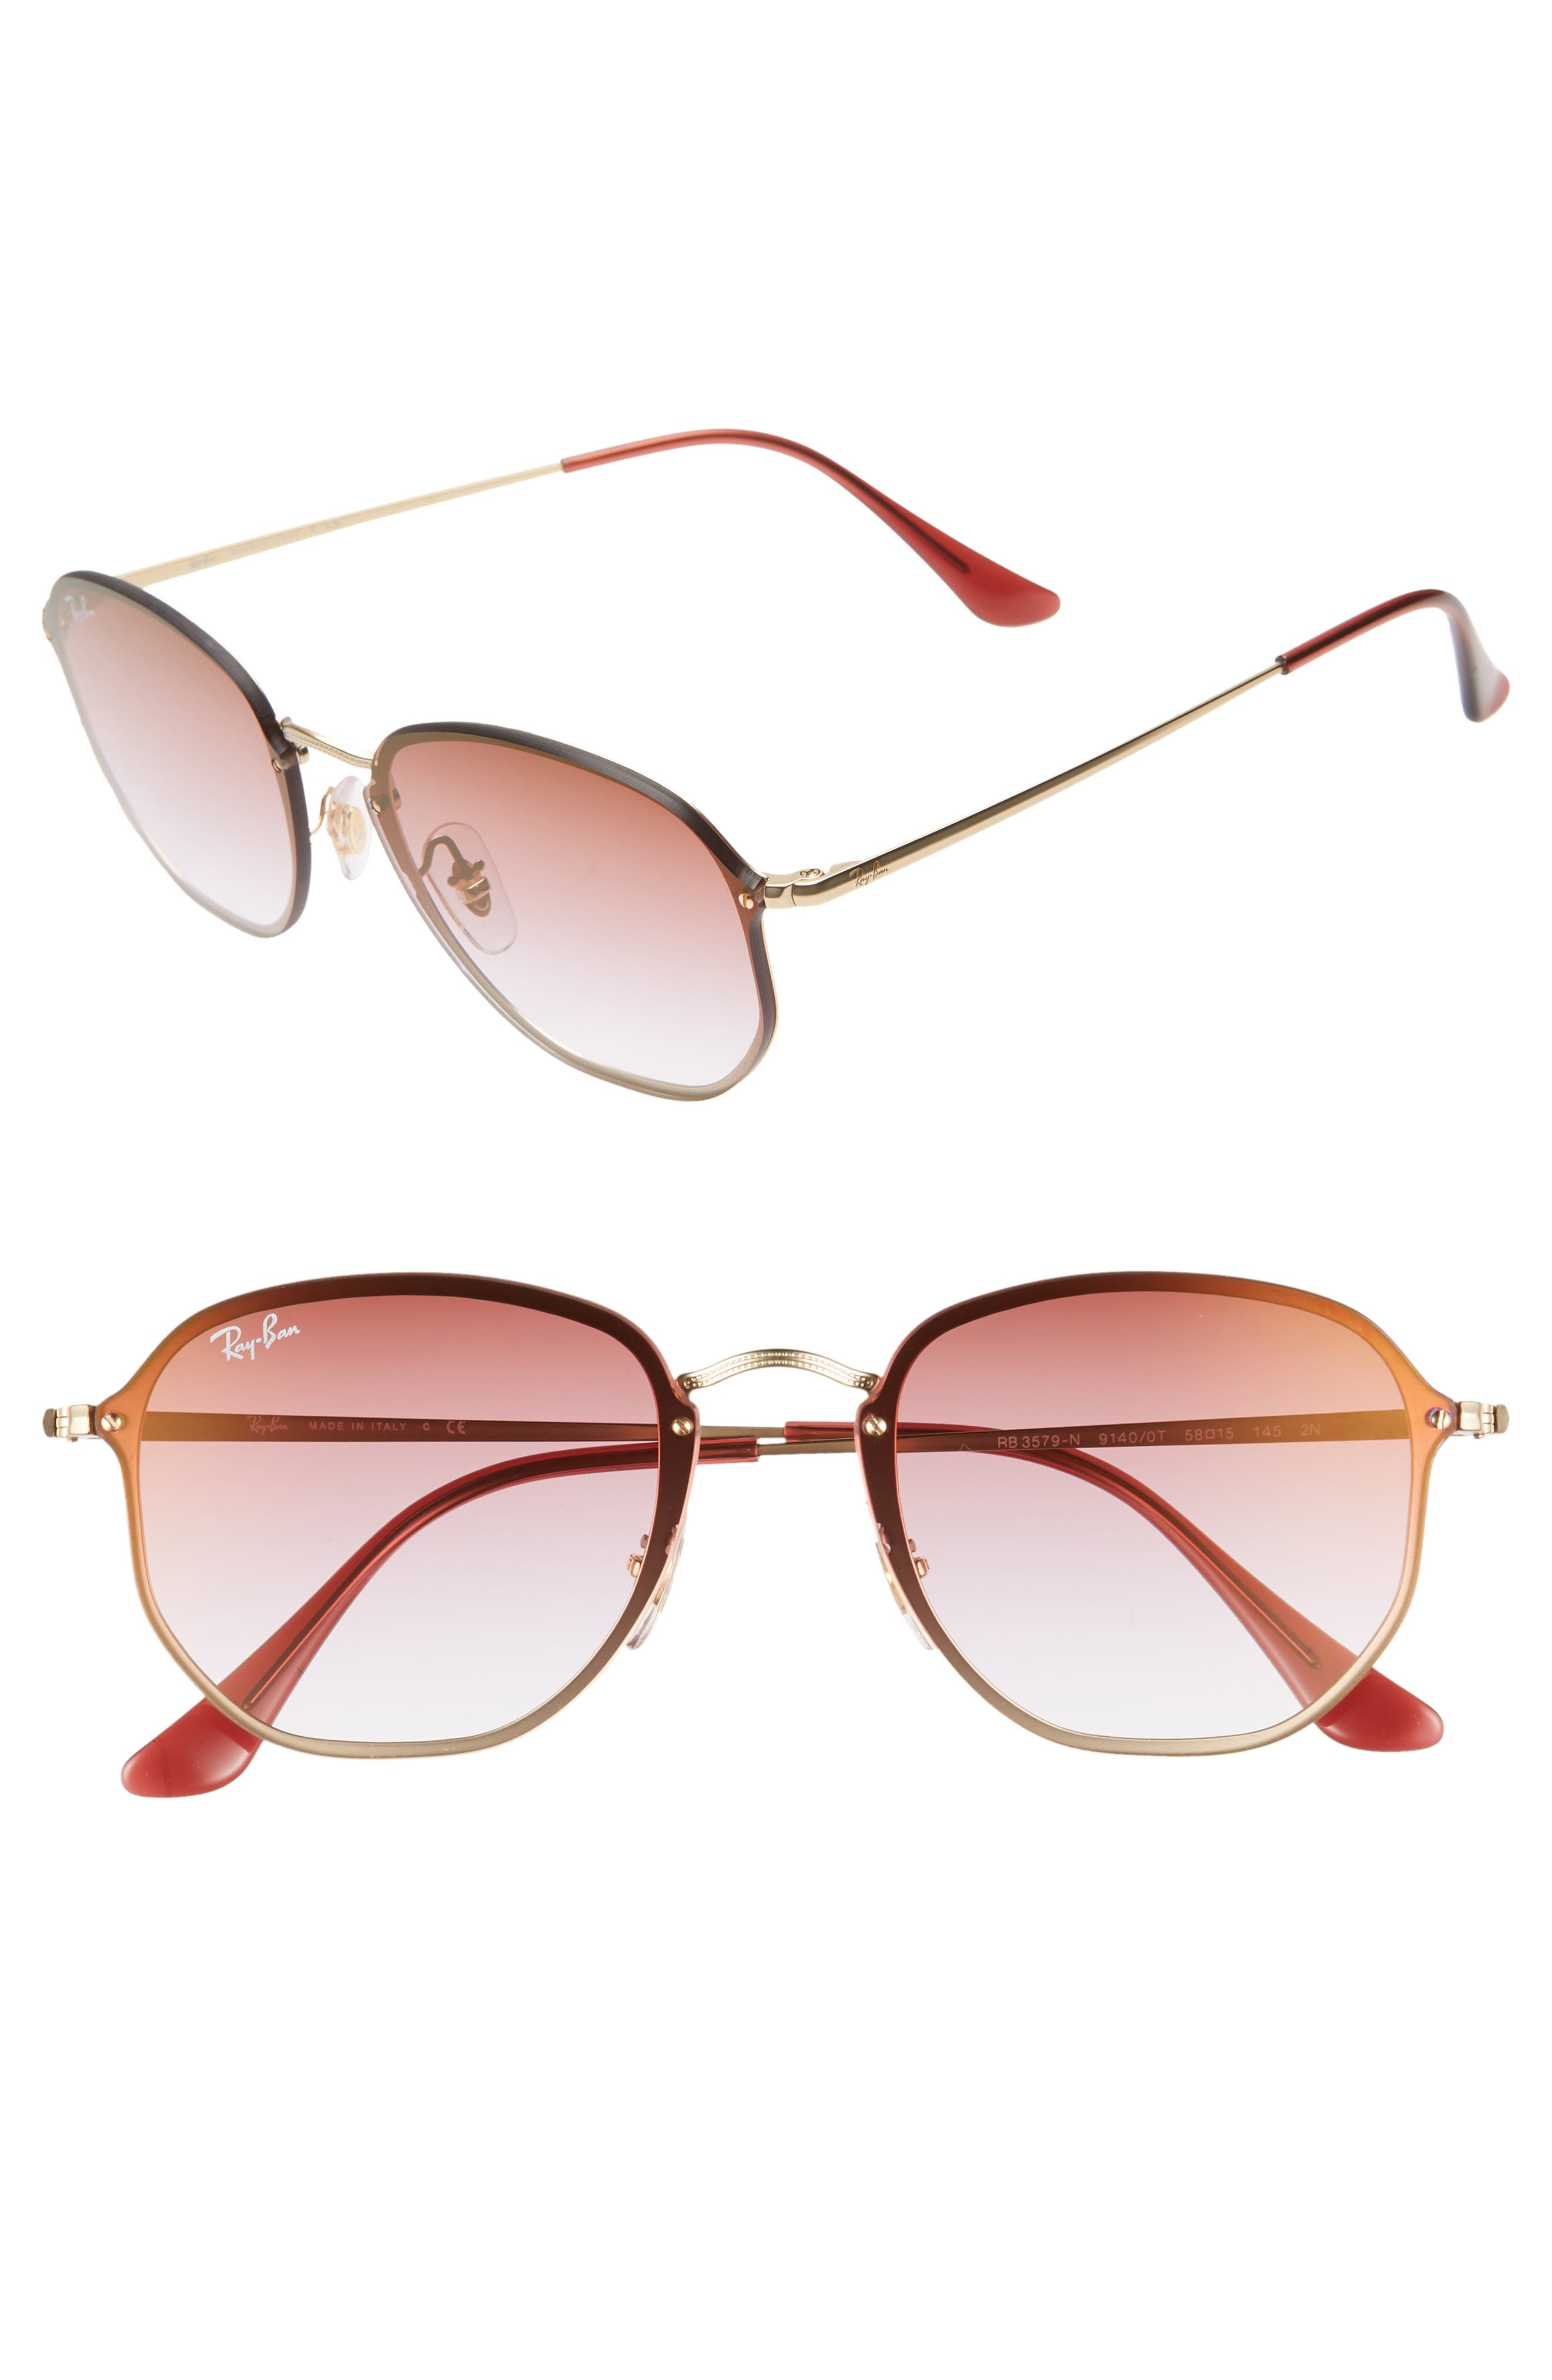 58mm Round Sunglasses,                             Main thumbnail 1, color,                             GOLD/ BROWN PINK GRADIENT